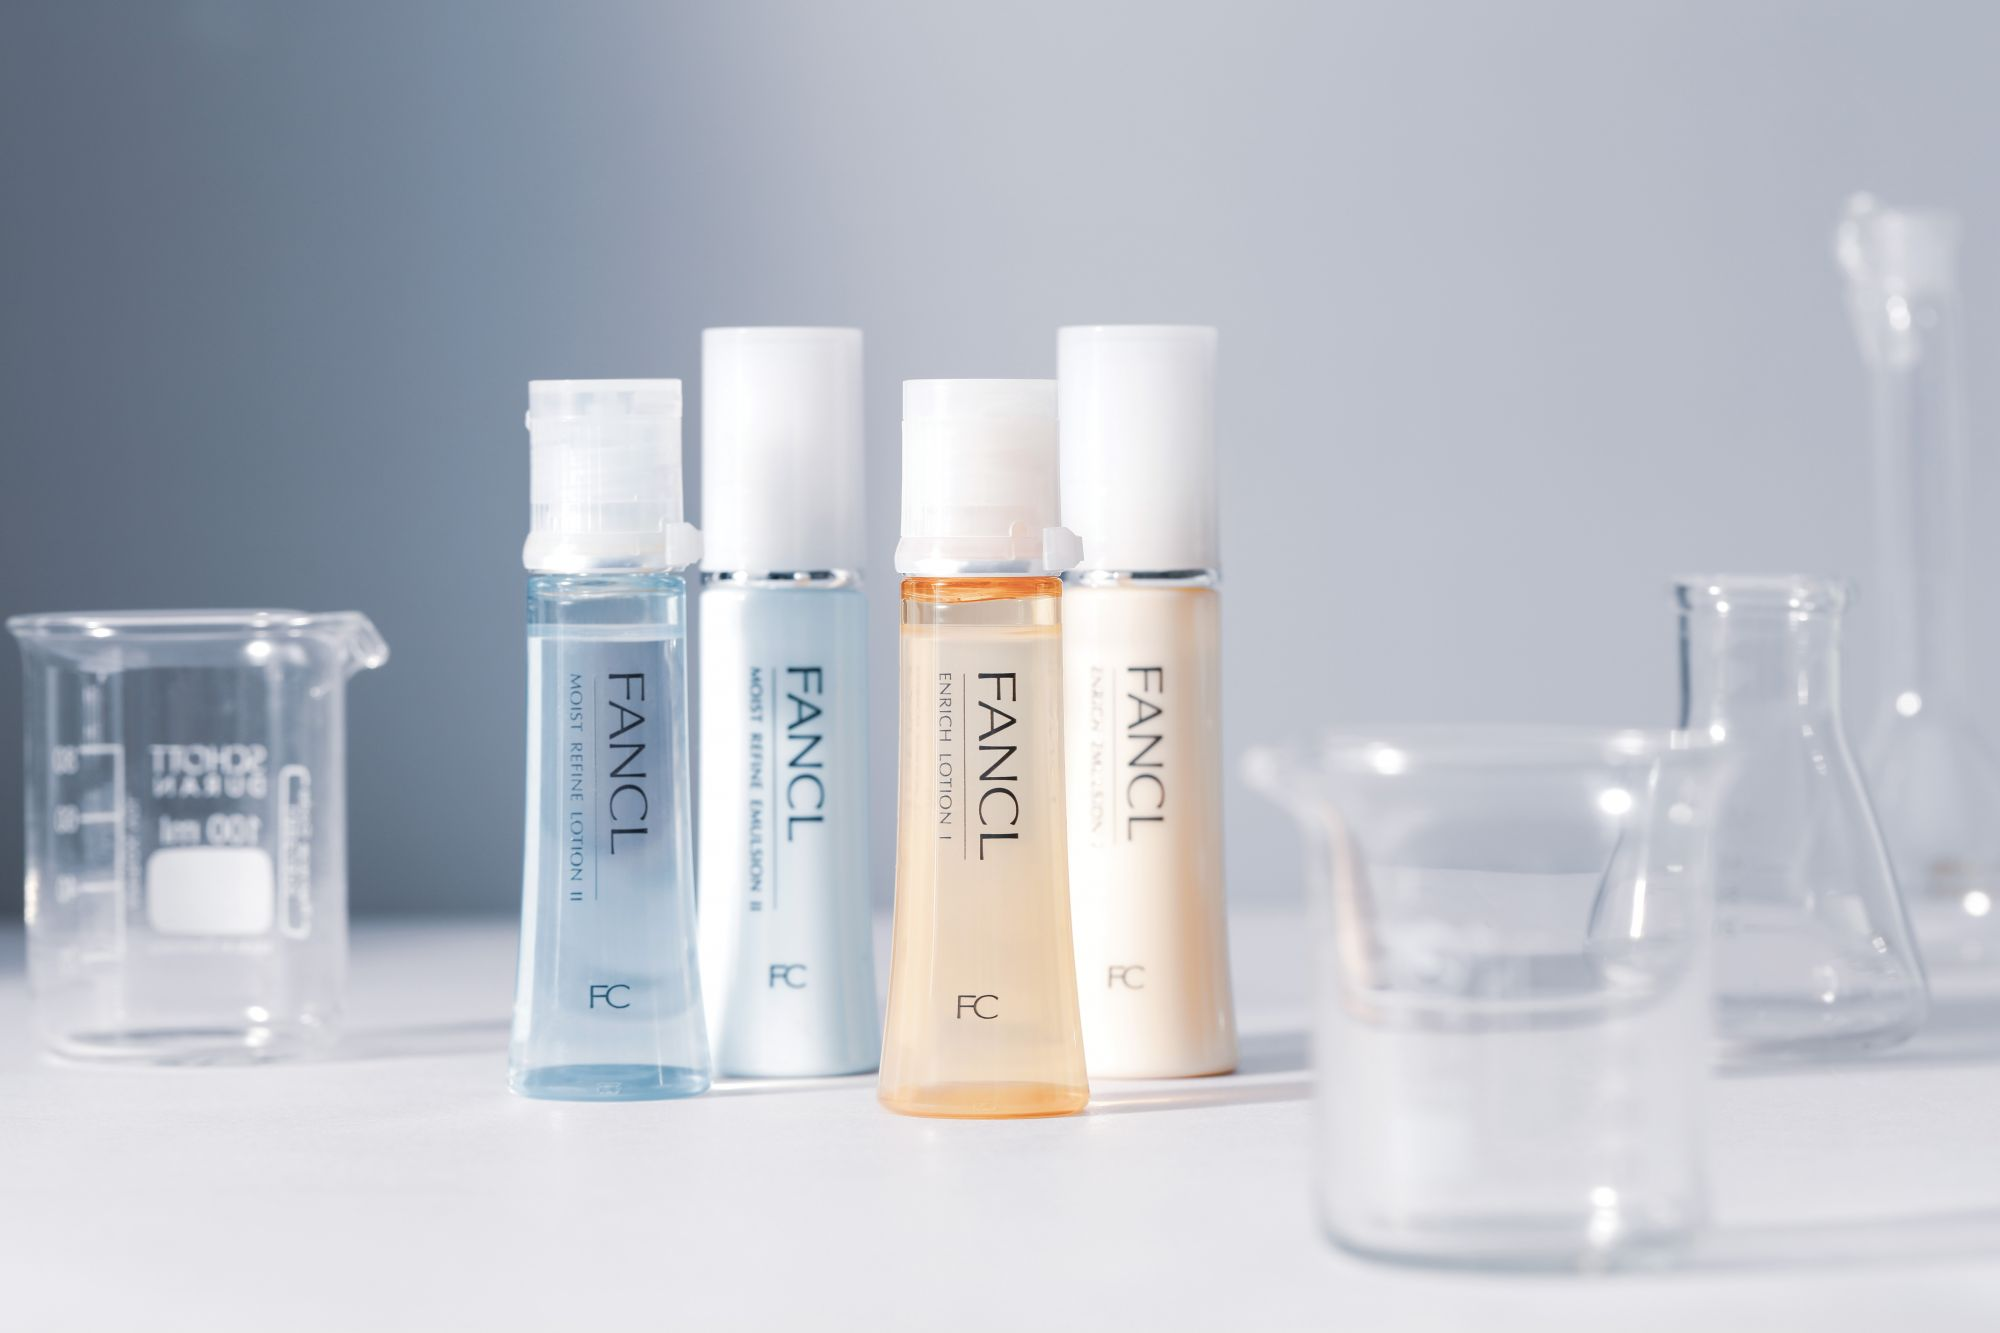 FANCL Champions A Zero Preservatives Approach To Beauty